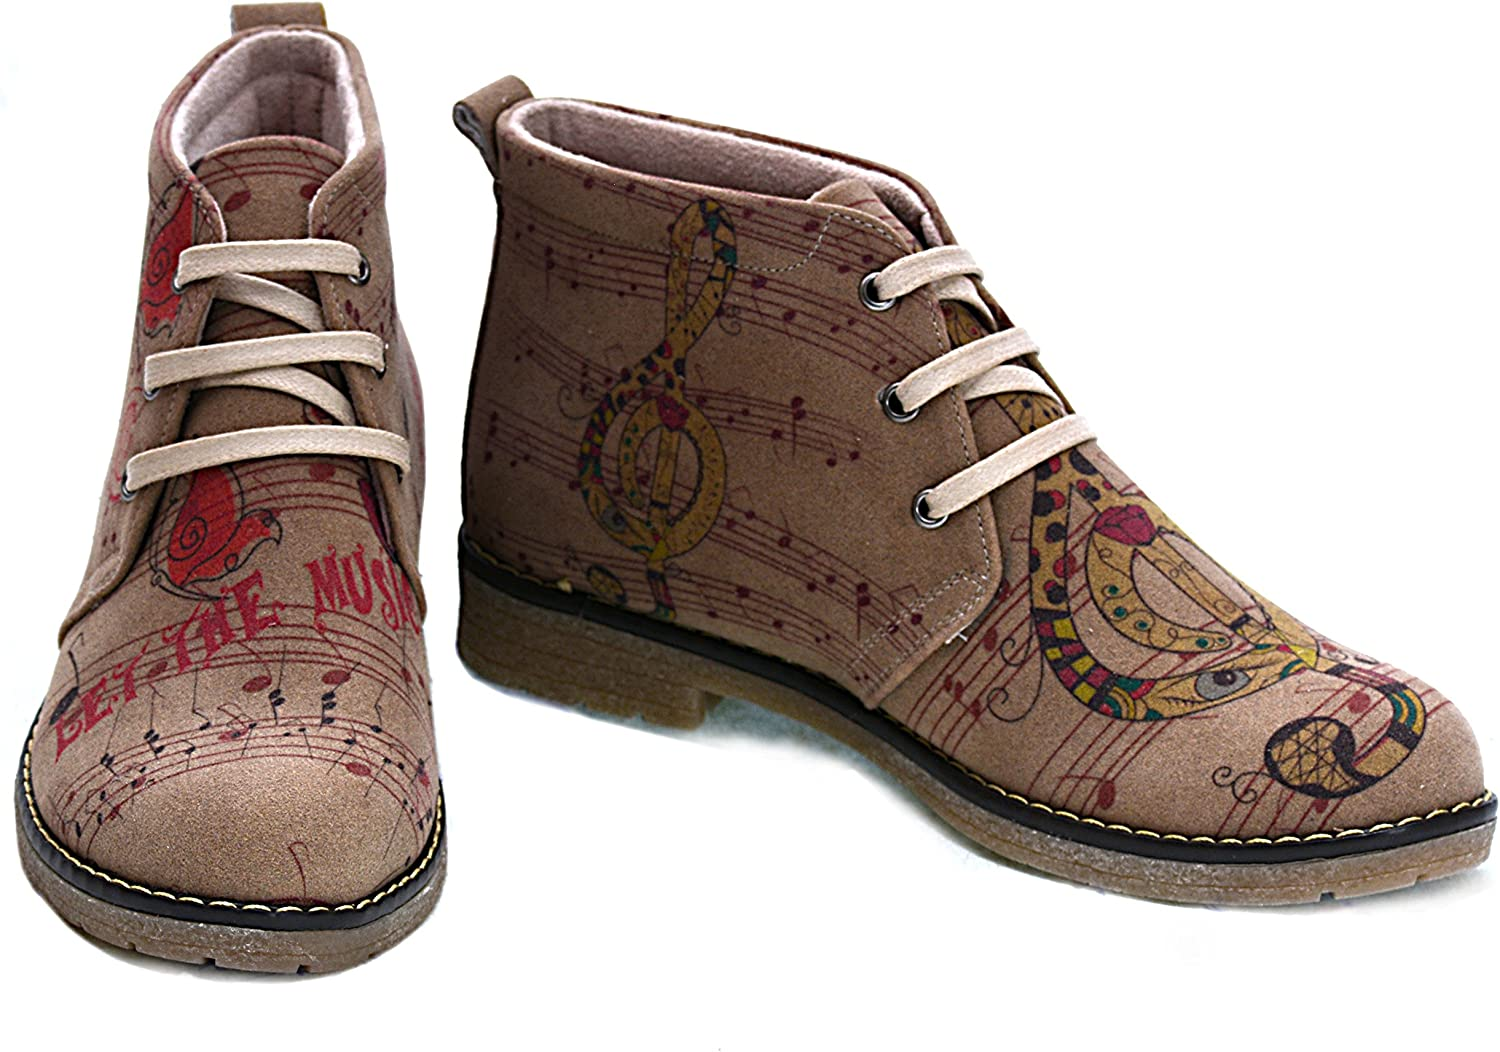 GOBY Womens shoes  Printed Music Lace-Up Ankle Boots HP106